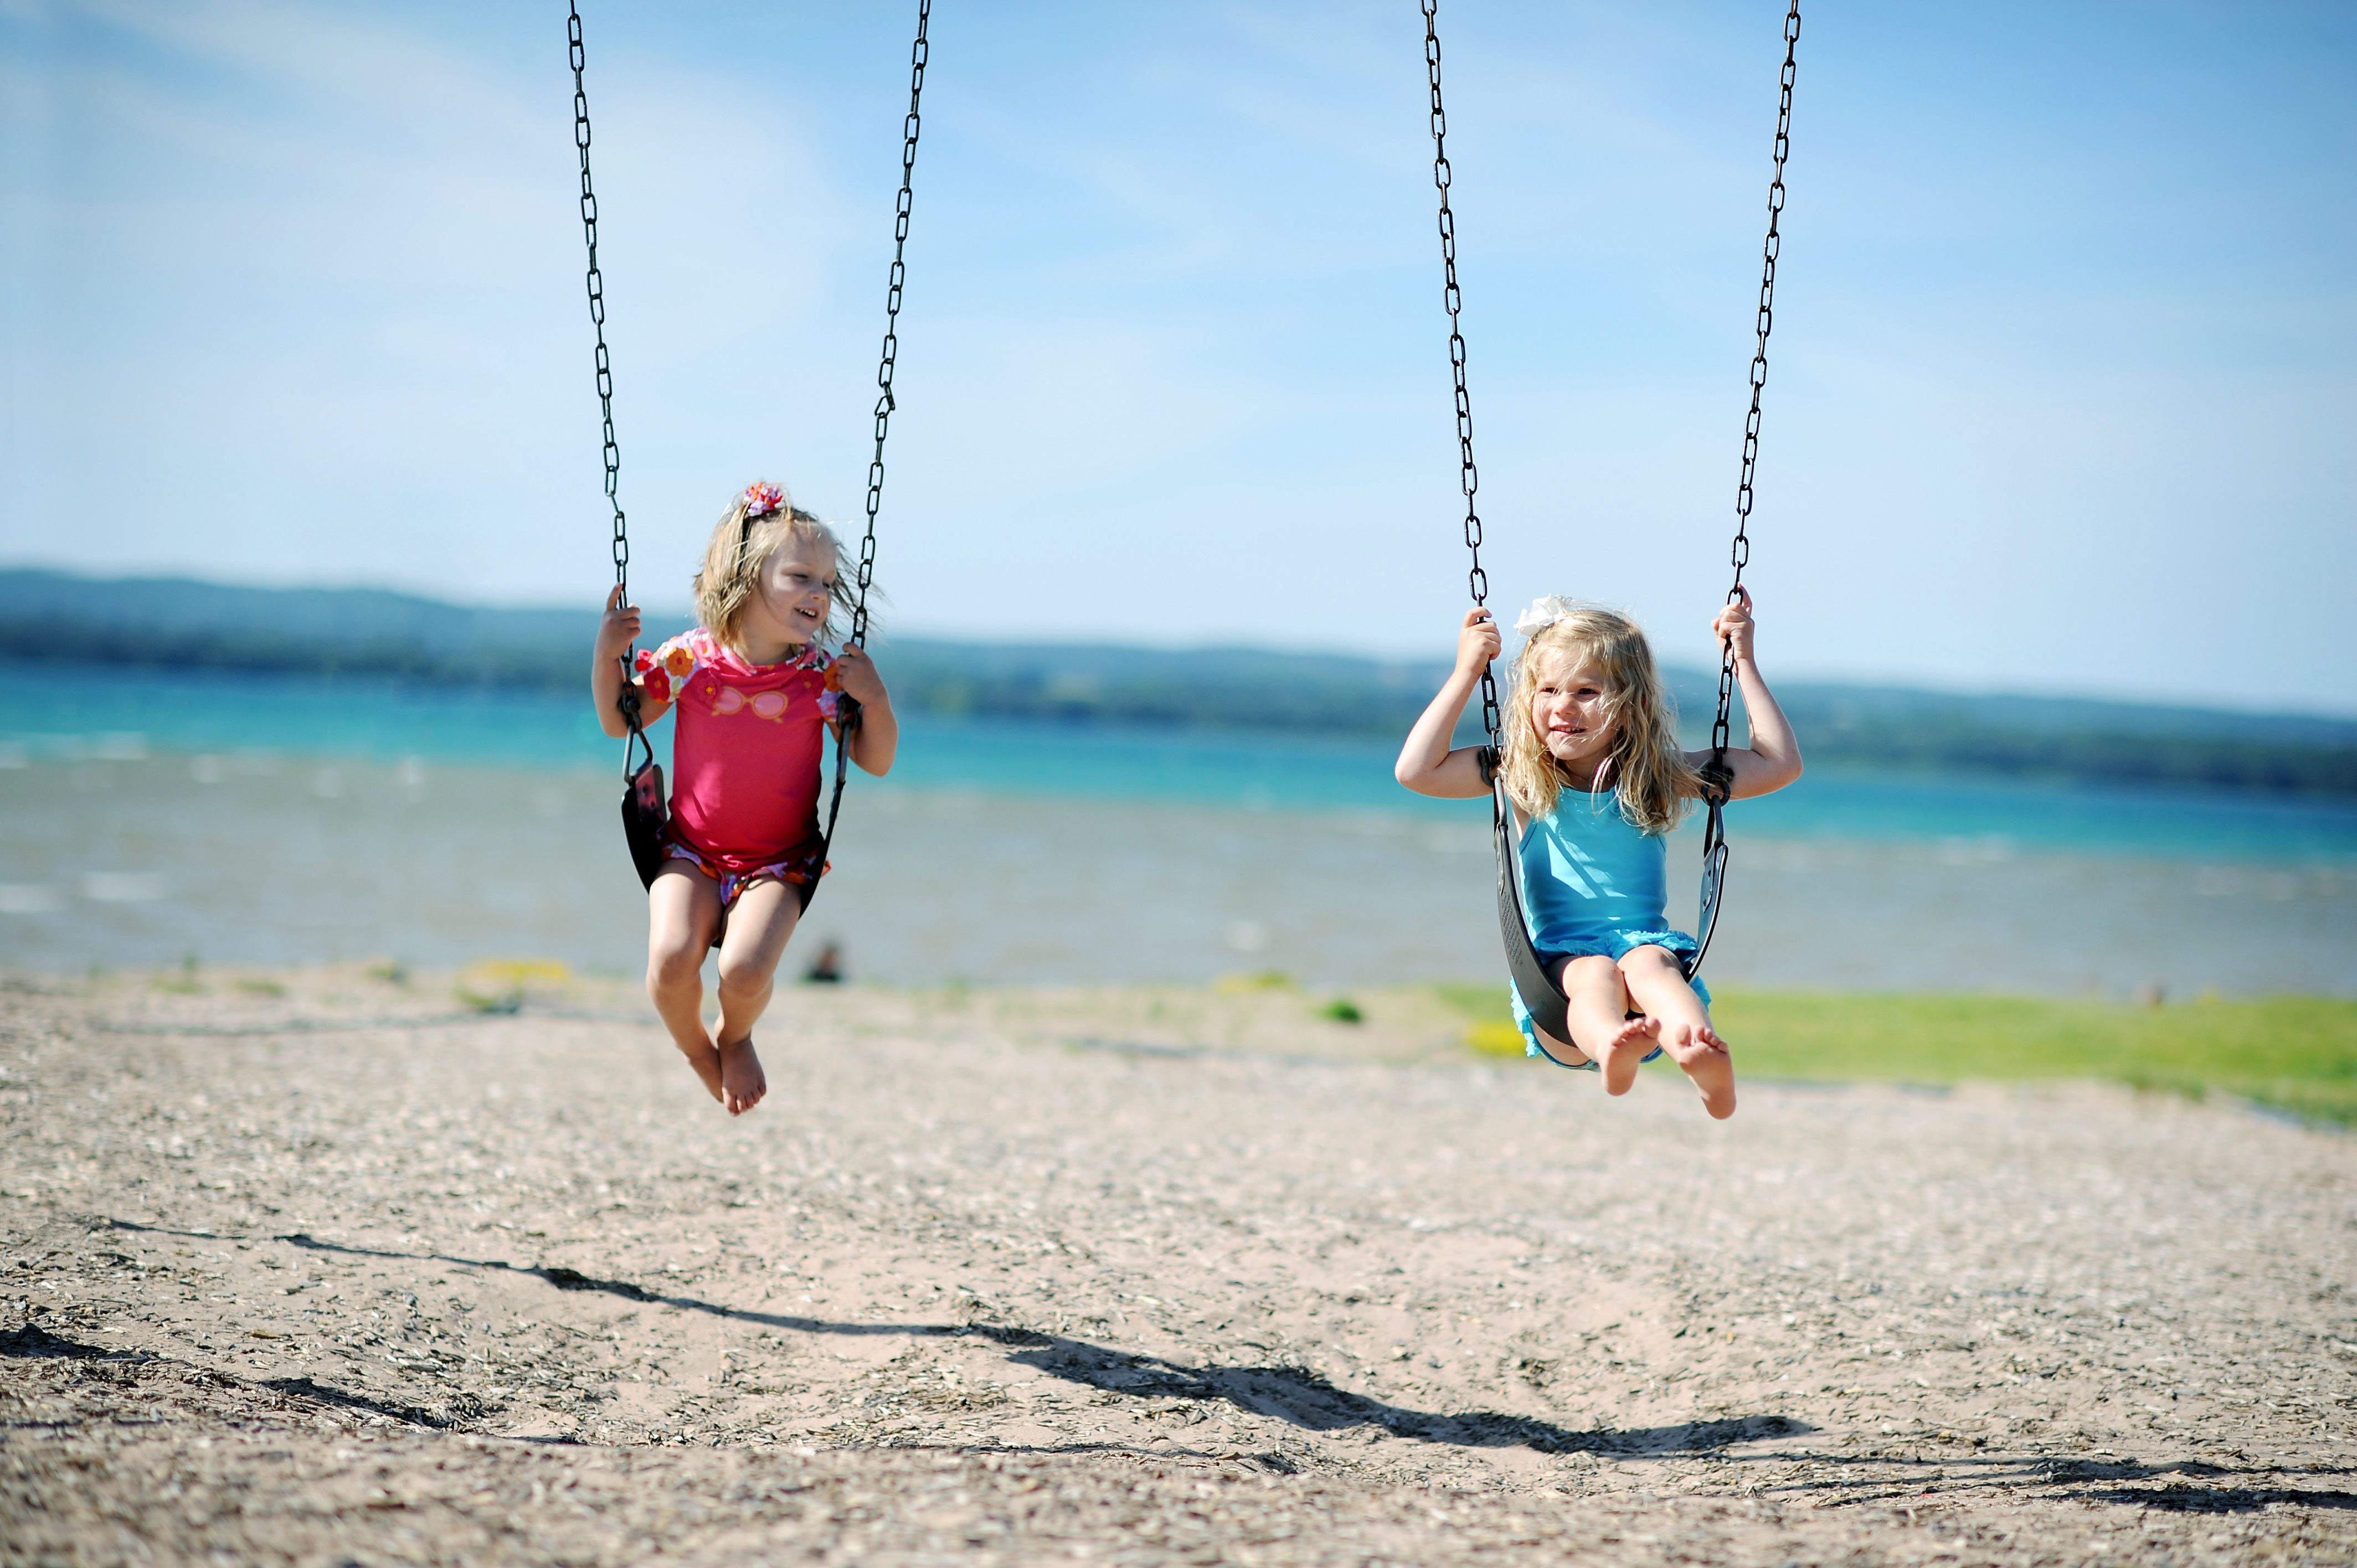 Visit Sherman Park in Sault Ste. Marie! This park features a ...